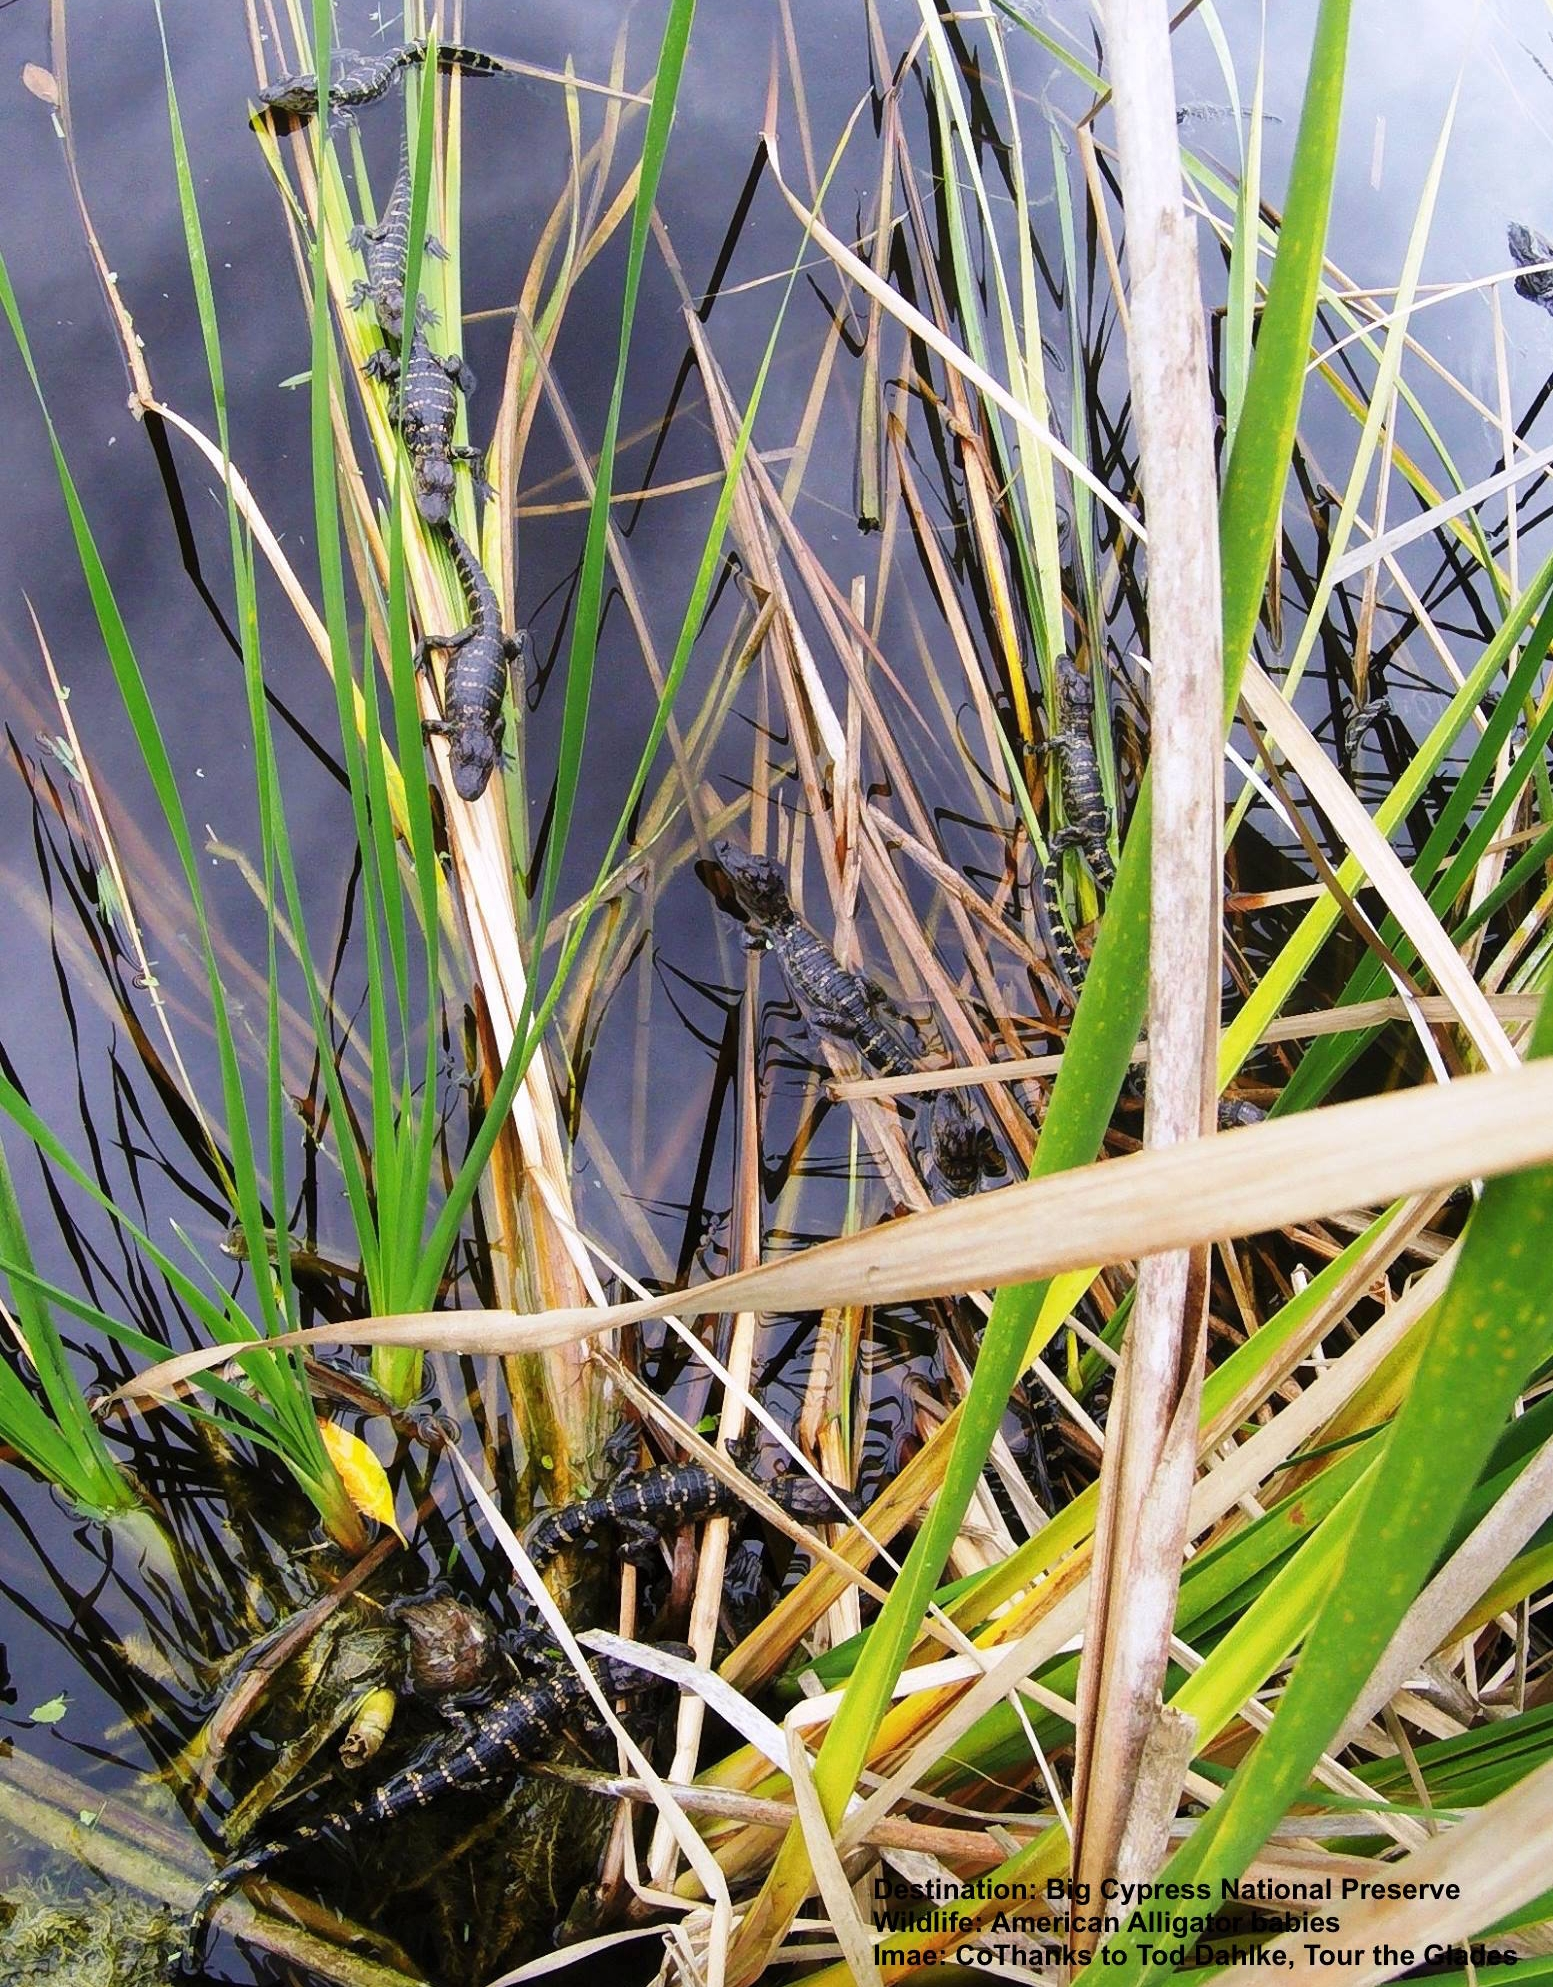 WATCH BABY ALLIGATORS FROM THE BOARDWALK AT BIG CYPRESS NATIONAL PRESERVE, FLORIDA. IMAGE: TOD DAHLKE, TOUR THE GLADES.